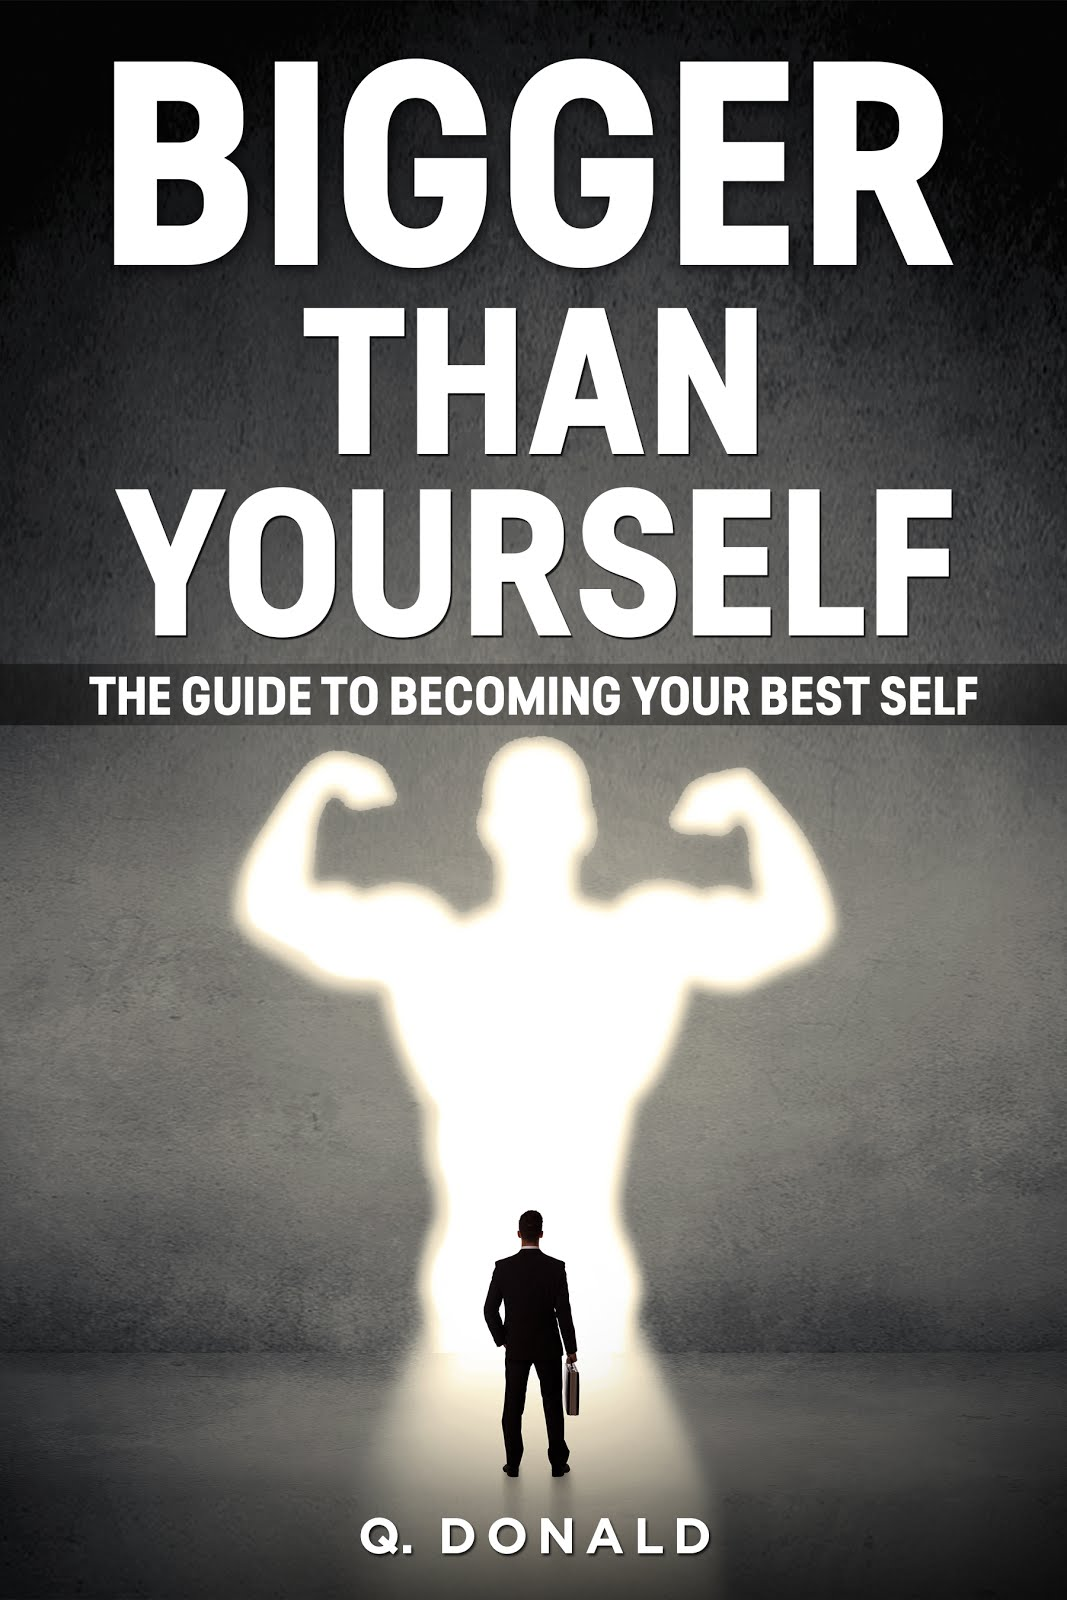 Bigger Than Yourself: The Guide To Becoming Your Best Self